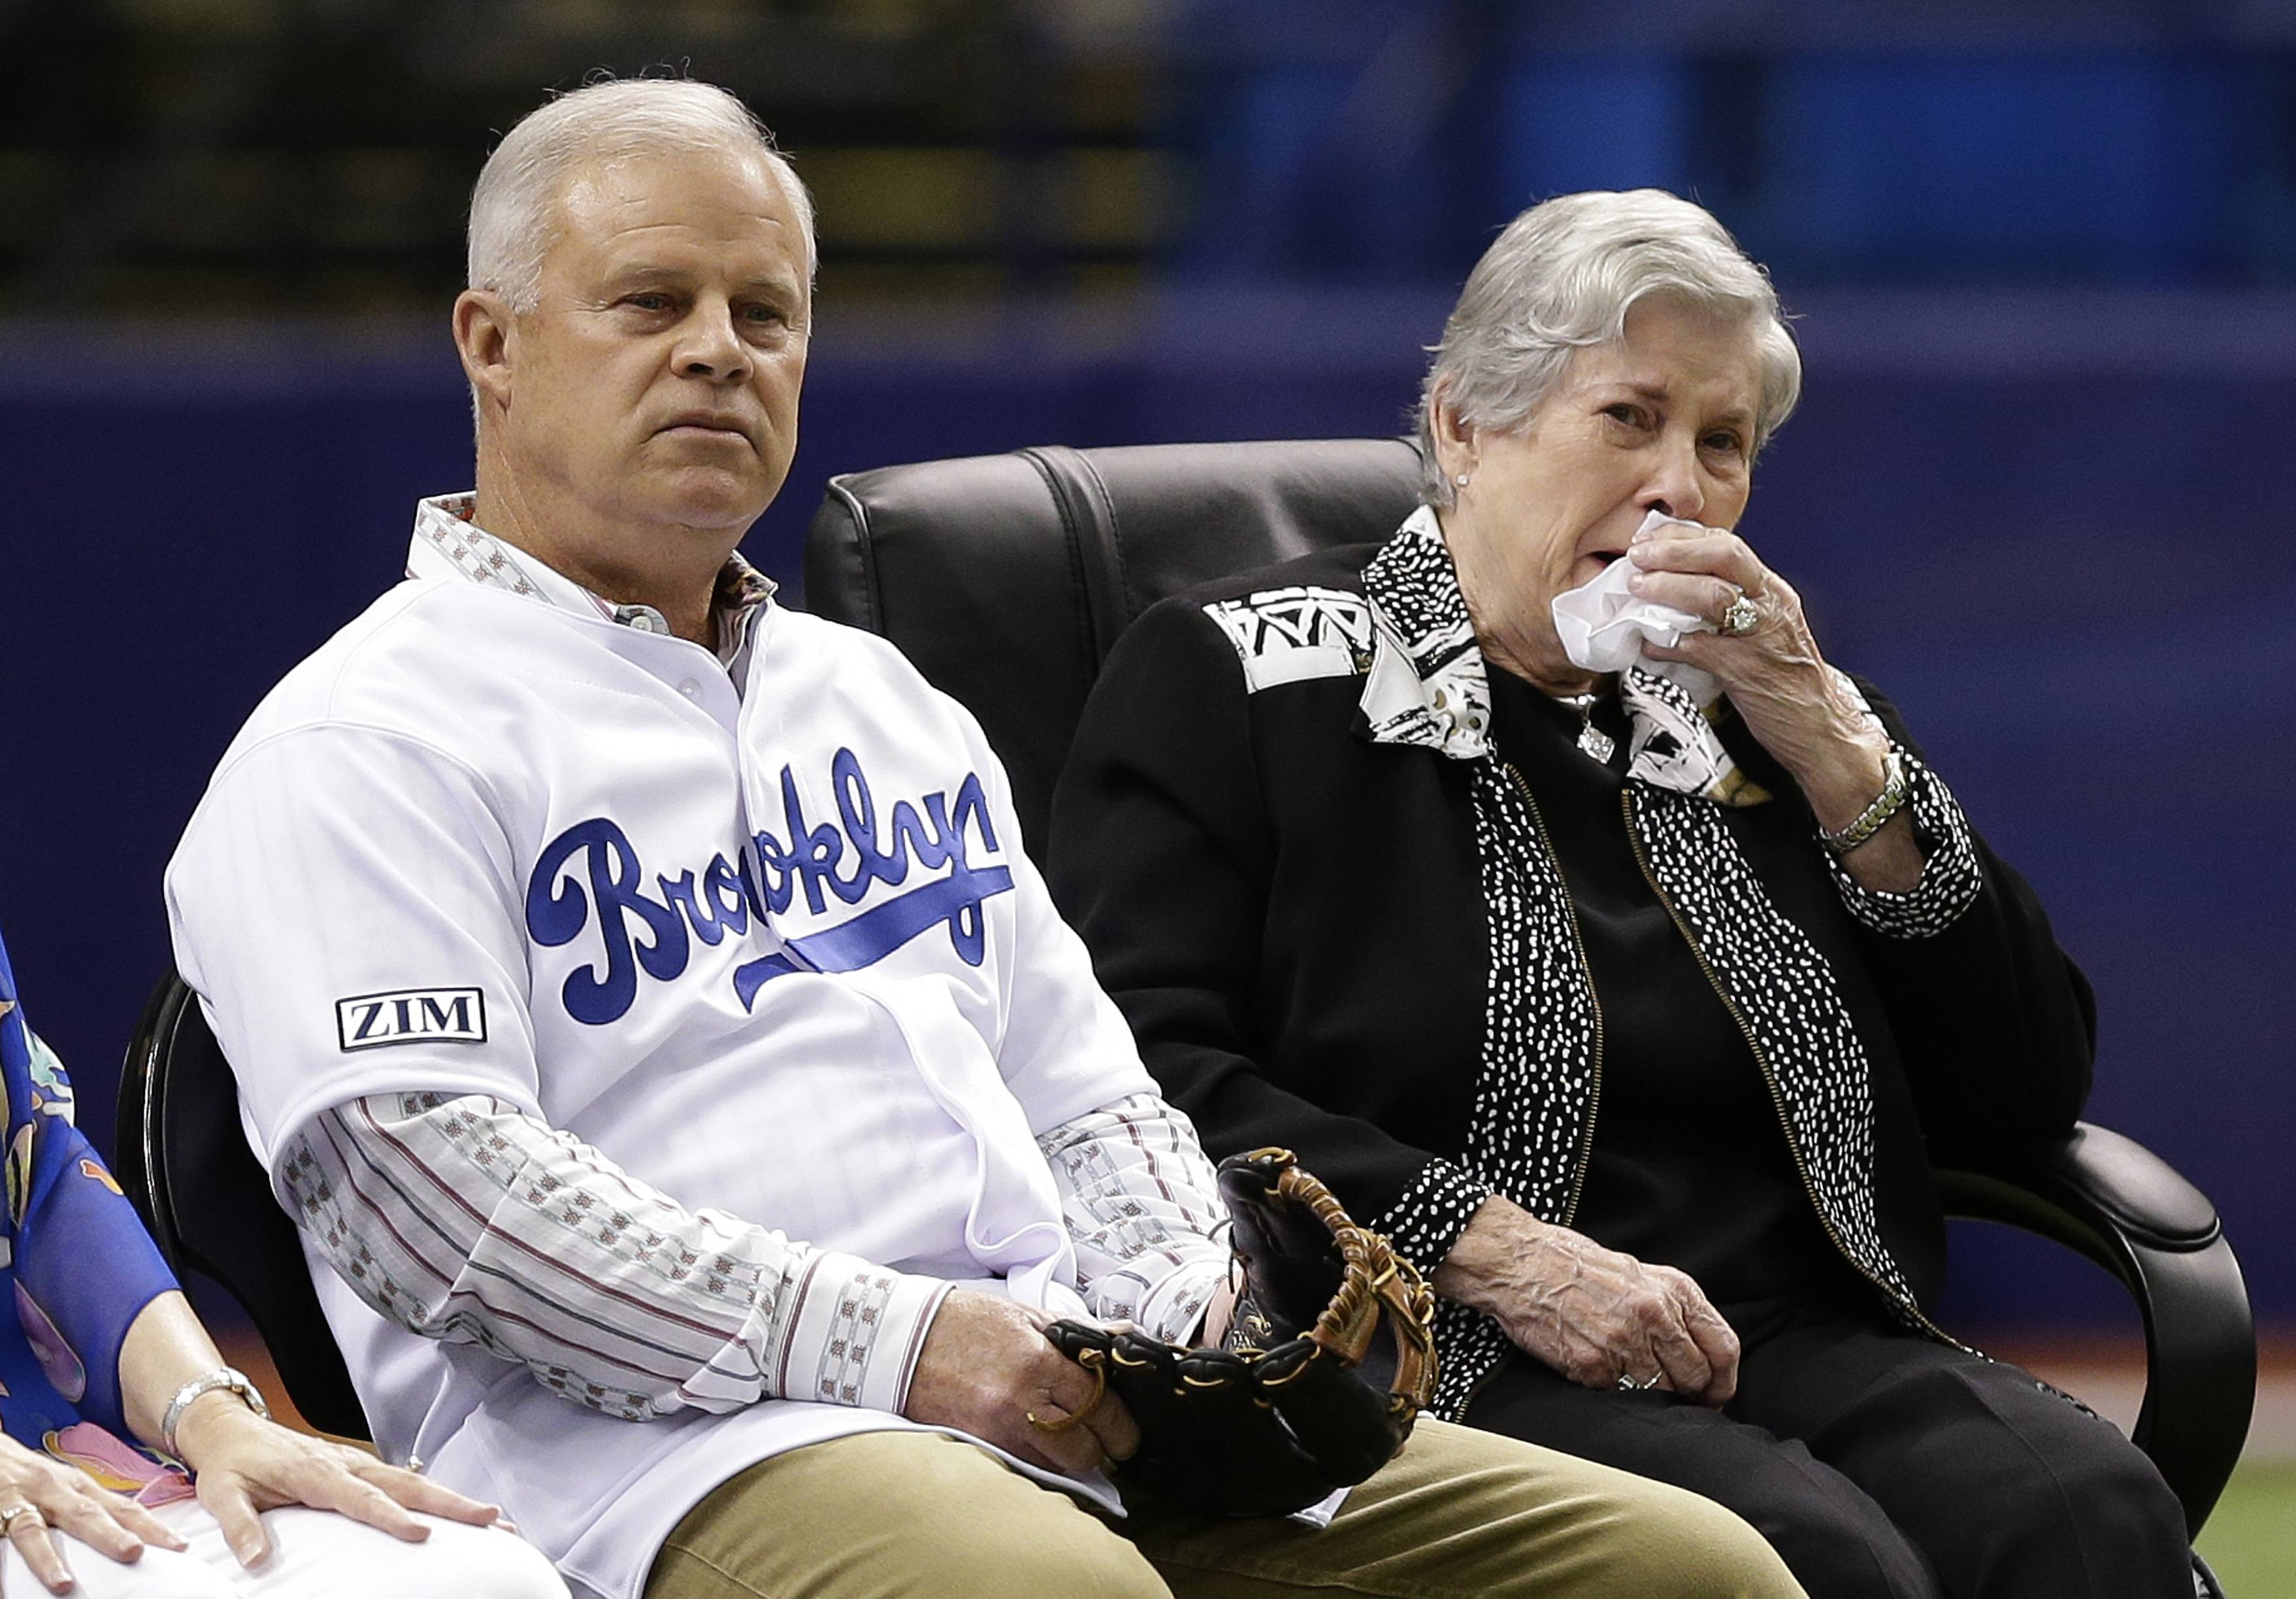 Don Zimmer's wife Soot, right, and son Tom watch a video tribe to Rays senior baseball adviser Don Zimmer before a baseball game Saturday, June 7, 2014, in St. Petersburg, Fla. Don Zimmer passed way earlier this week at the age of 83.